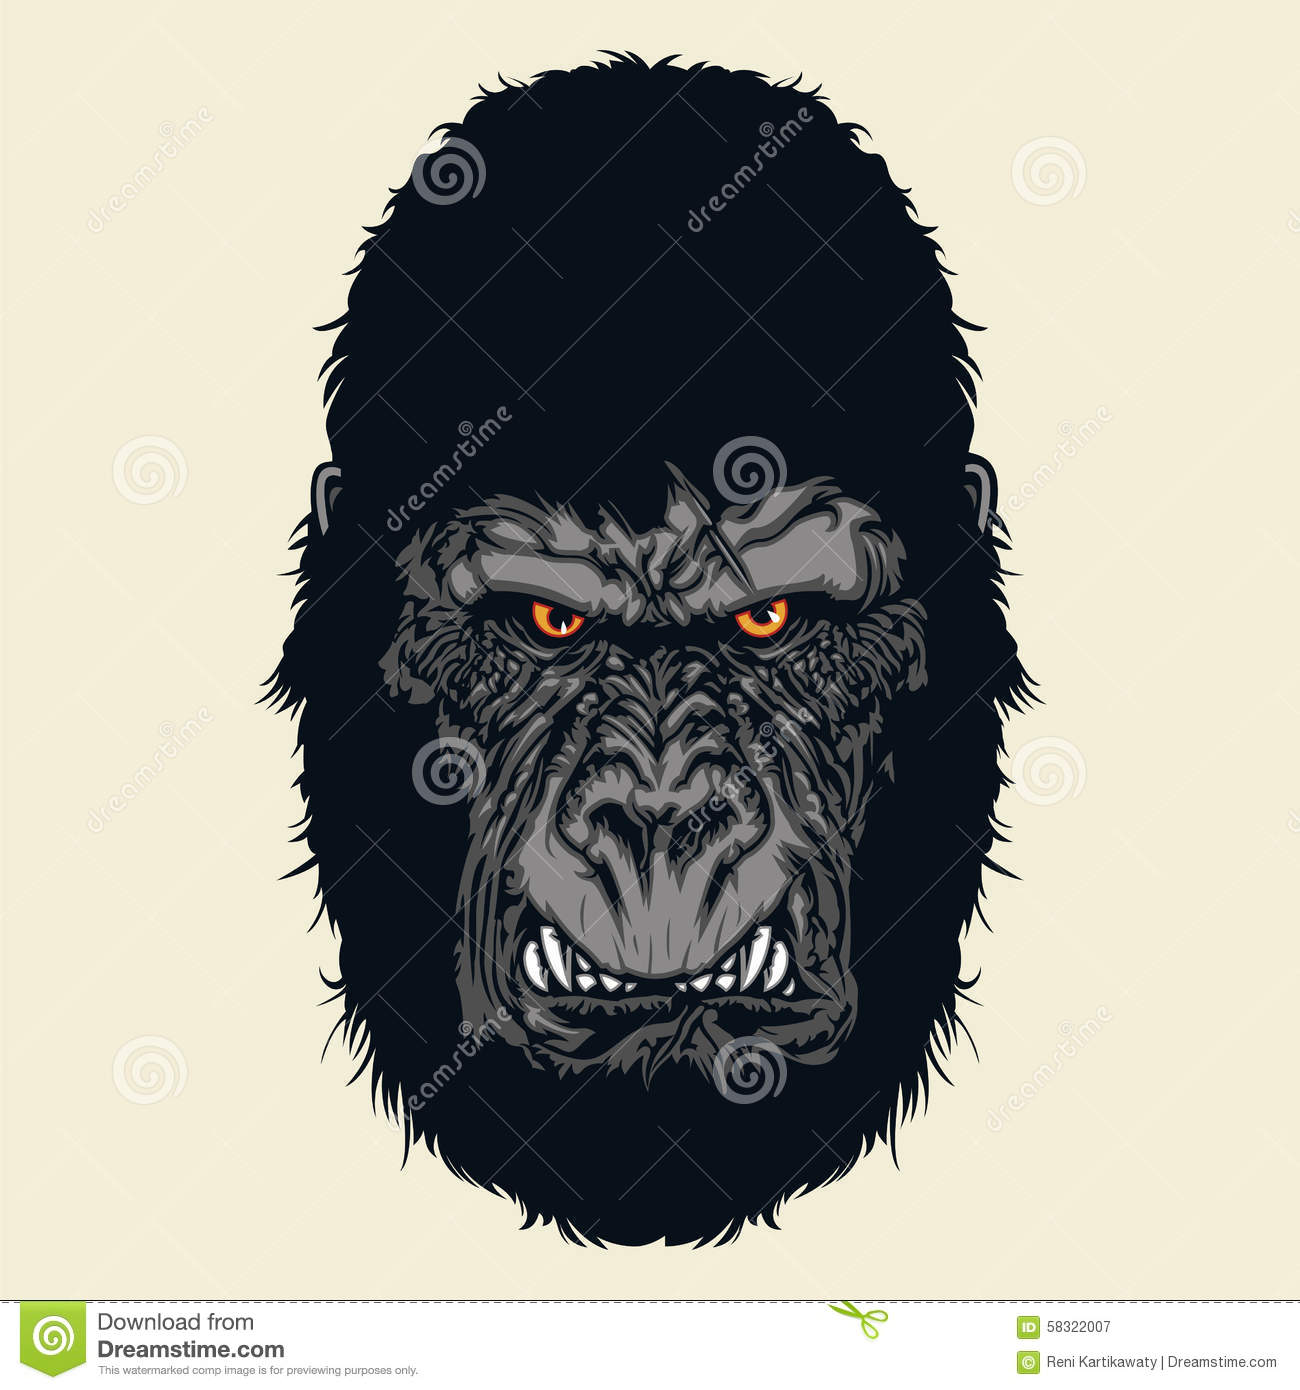 angry gorilla head drawing - photo #31